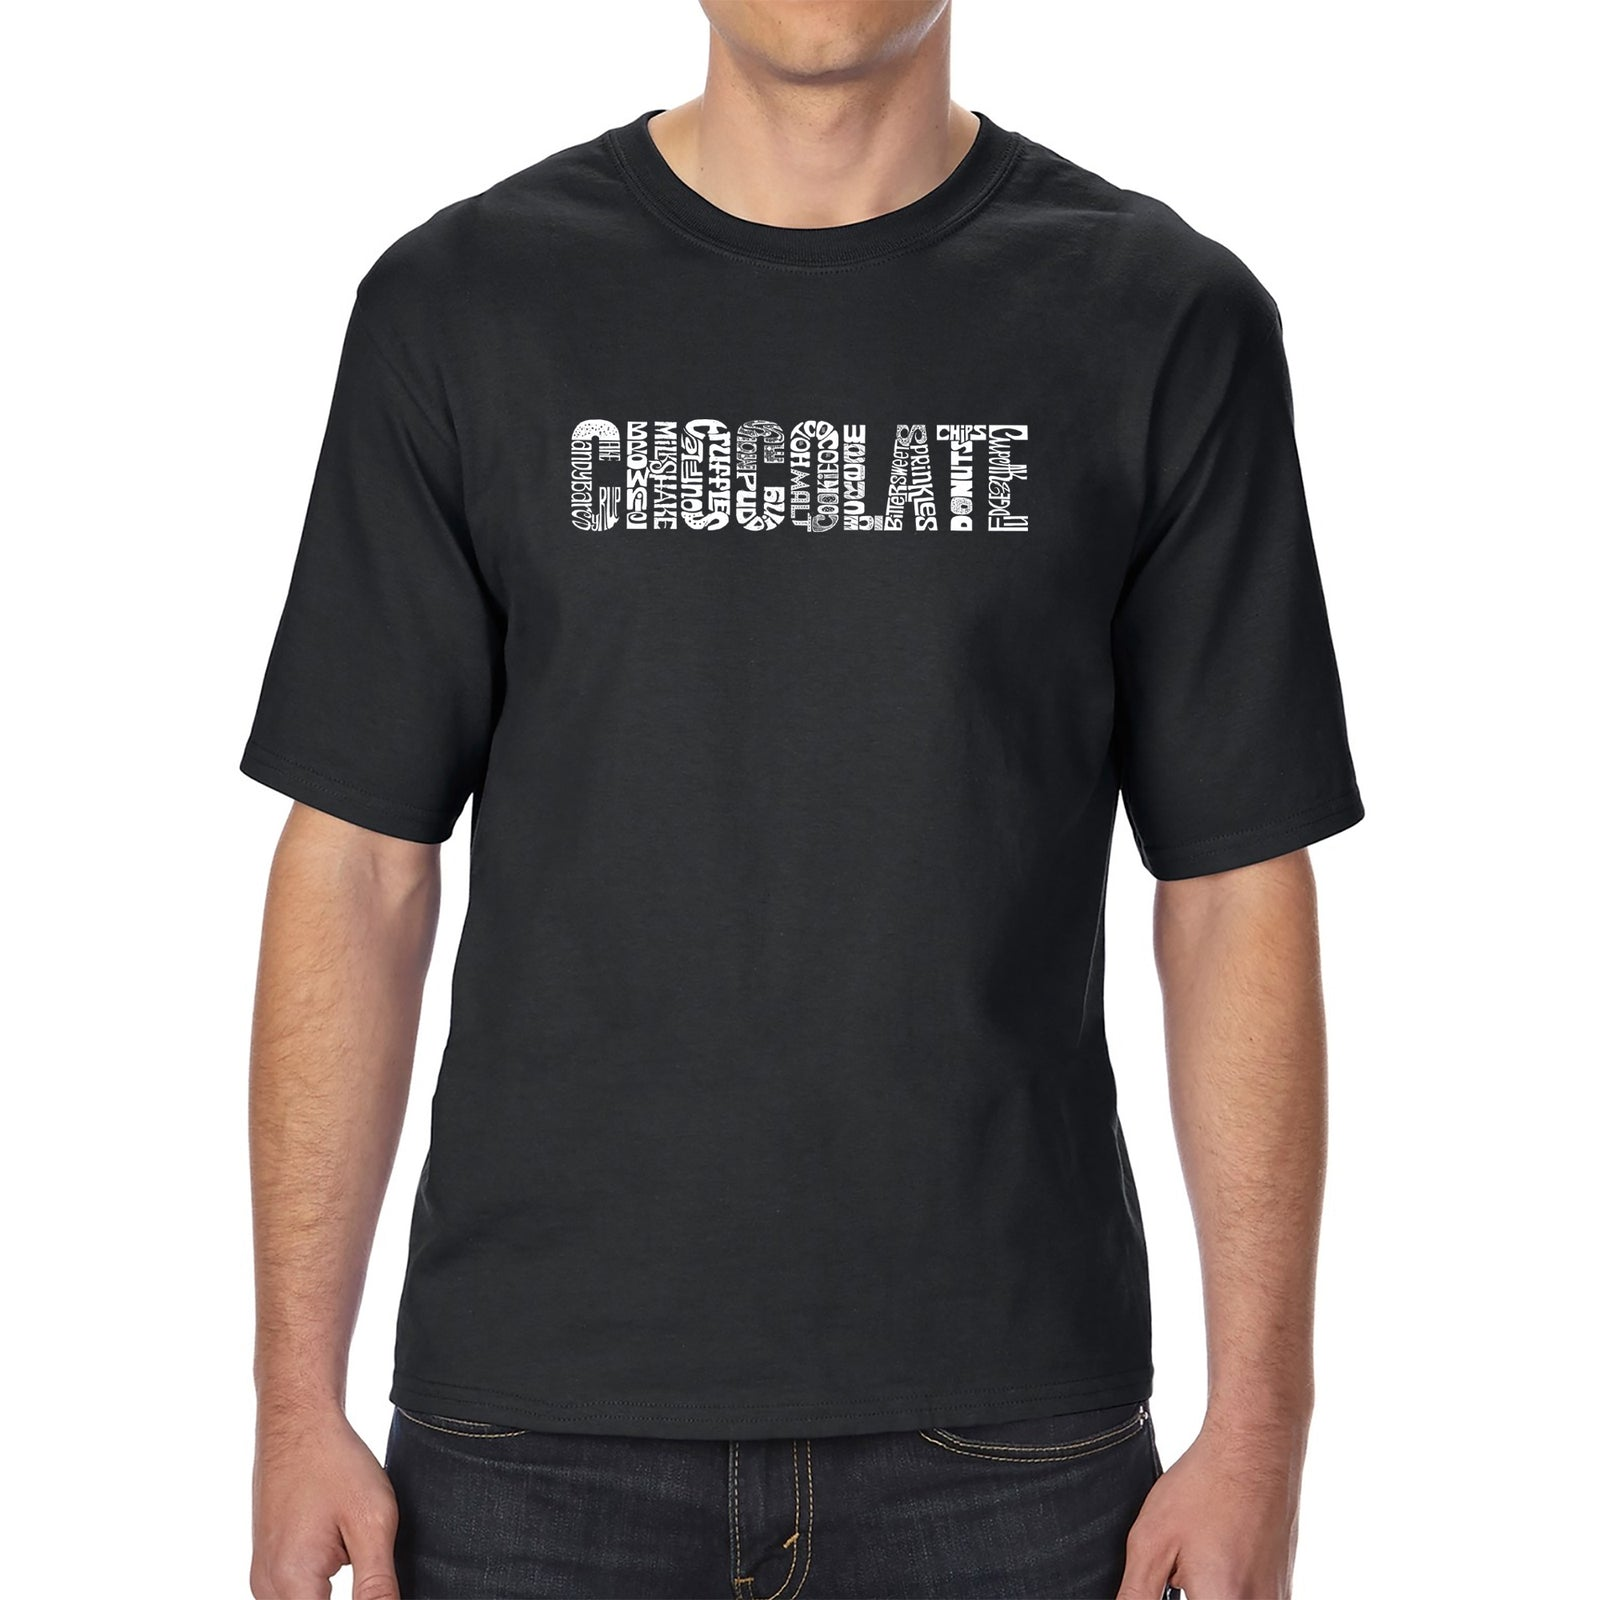 Men's Tall and Long Word Art T-shirt - Different foods made with chocolate